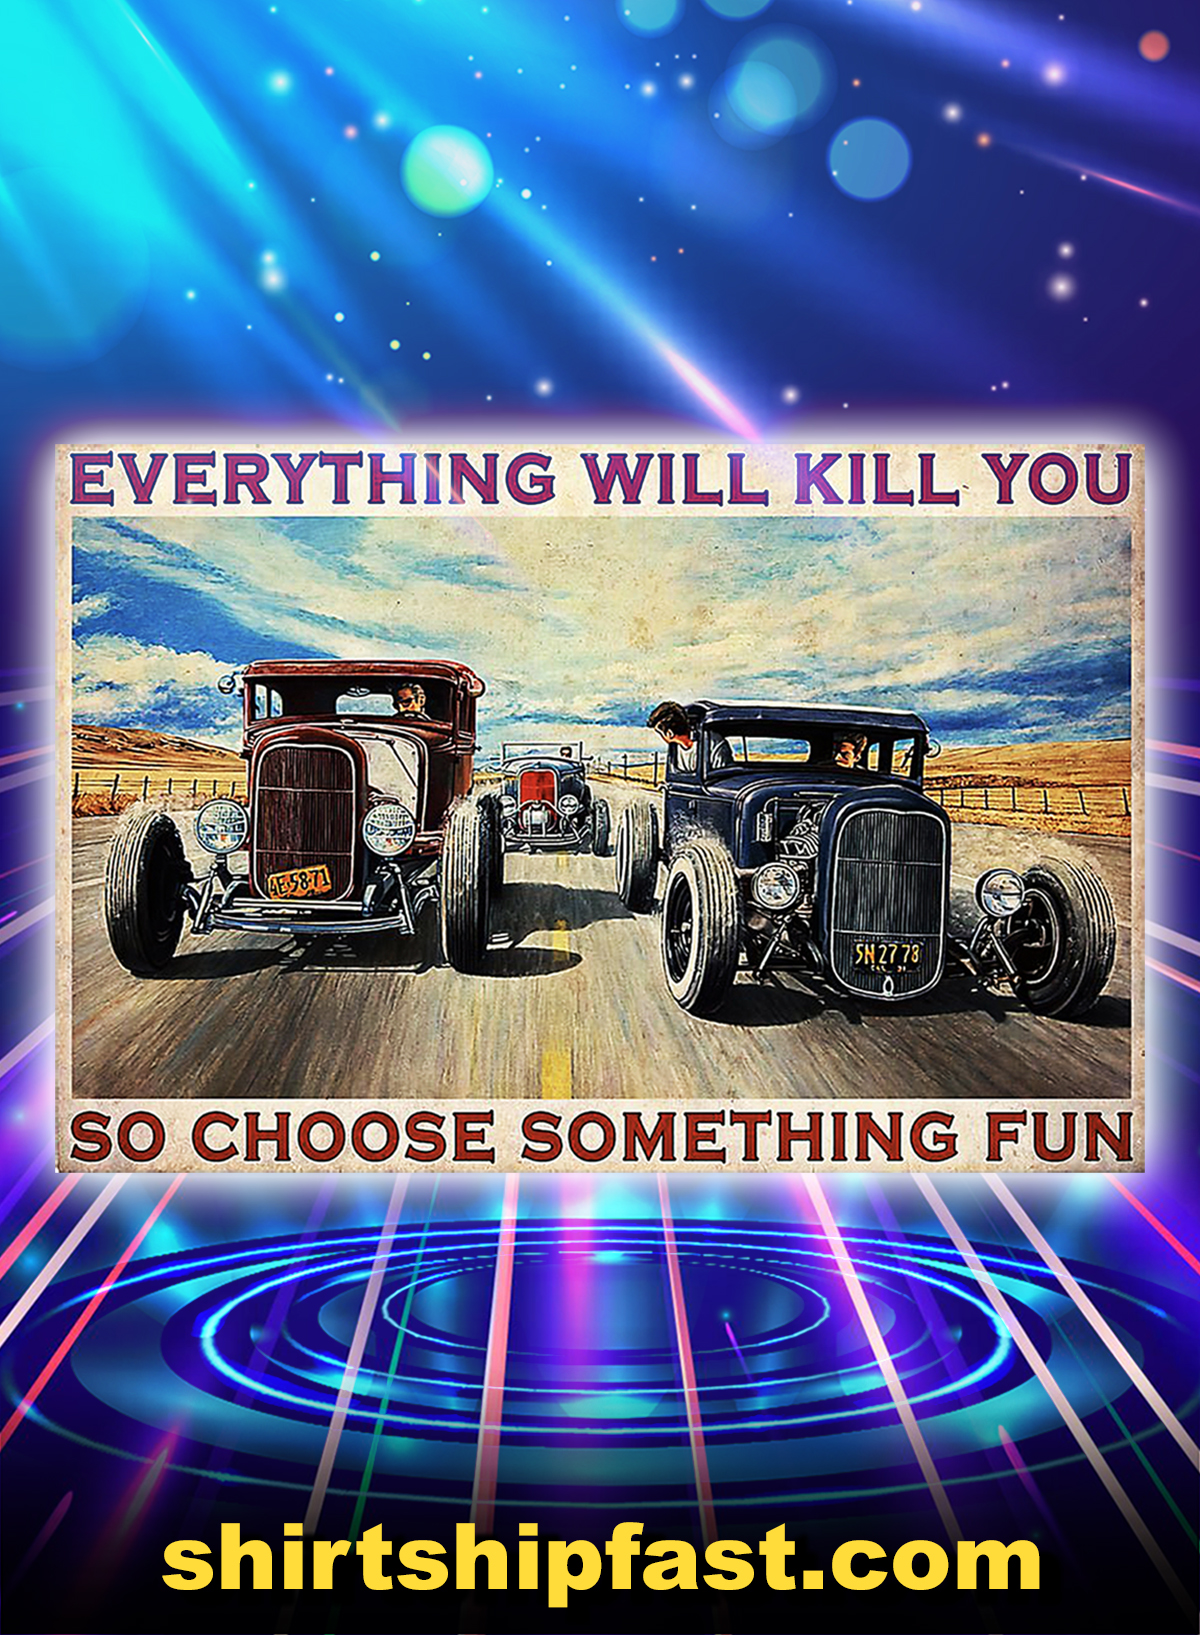 Hot rod everything will kill you so choose something fun poster - A1